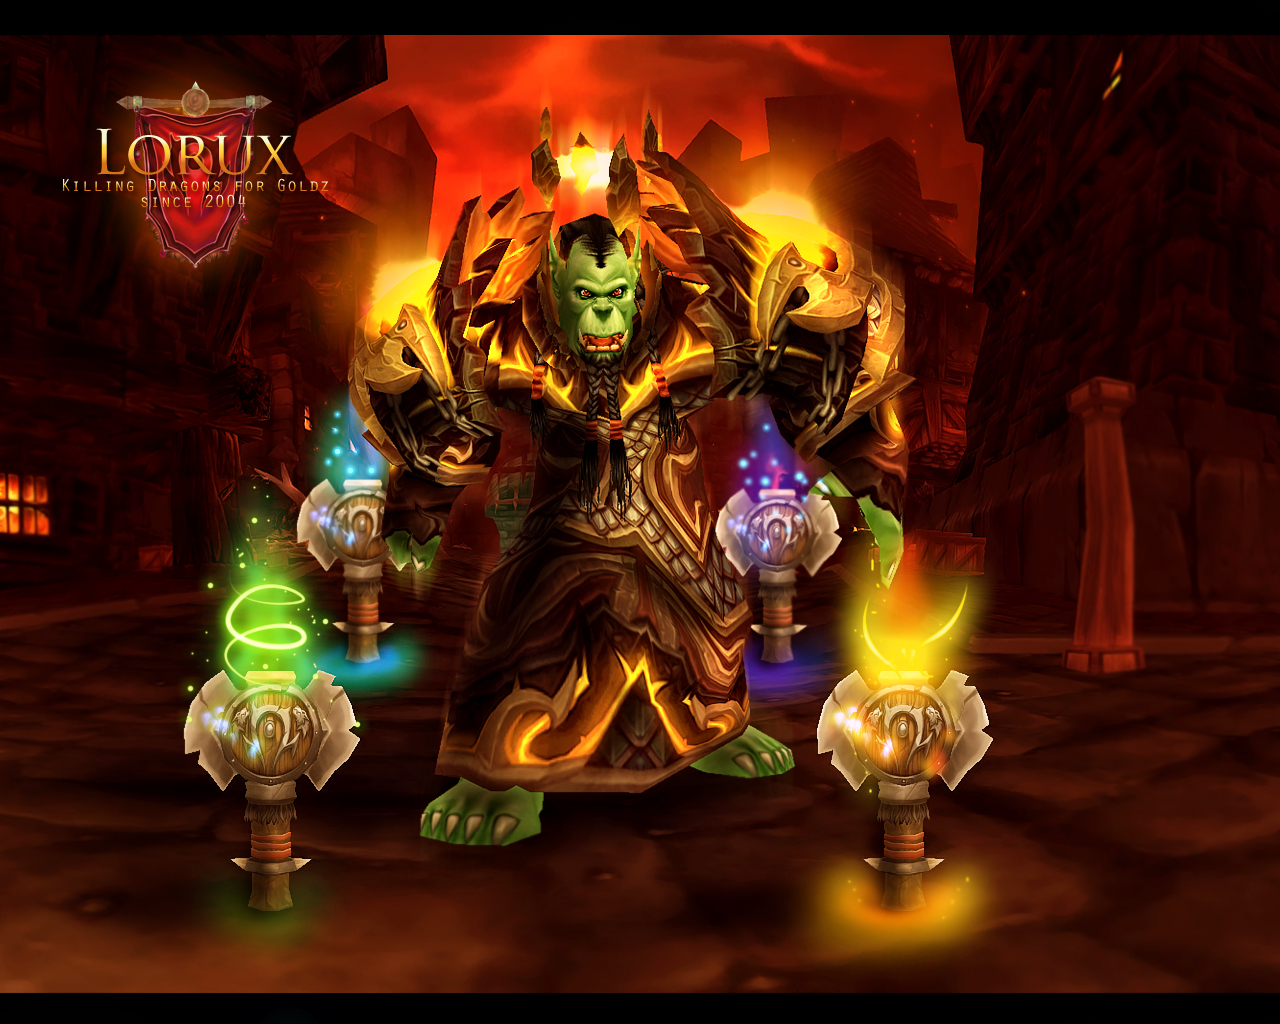 Free Download Wow Shaman Wallpaper Displaying 9 Images For